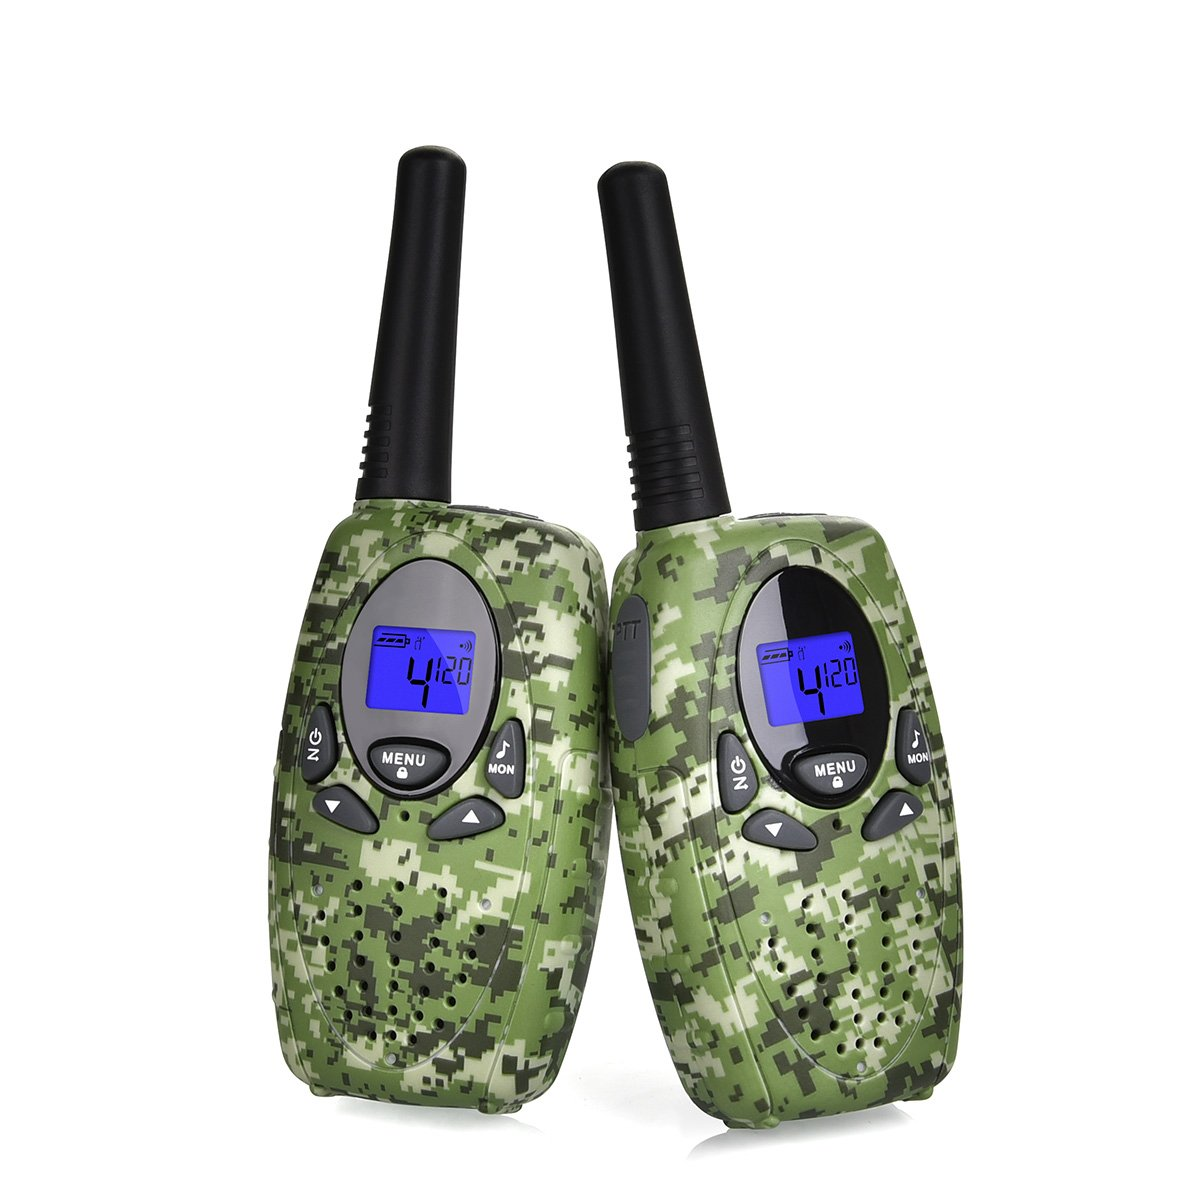 Camouflage Swiftion Handheld Kids Walkie Talkies for Boys Rechargeable 22 Channel 0.5W FRS//GMRS Walky Talky for Kids 2 Way Radios Kids walkie talkies Camouflage disruptive Pattern